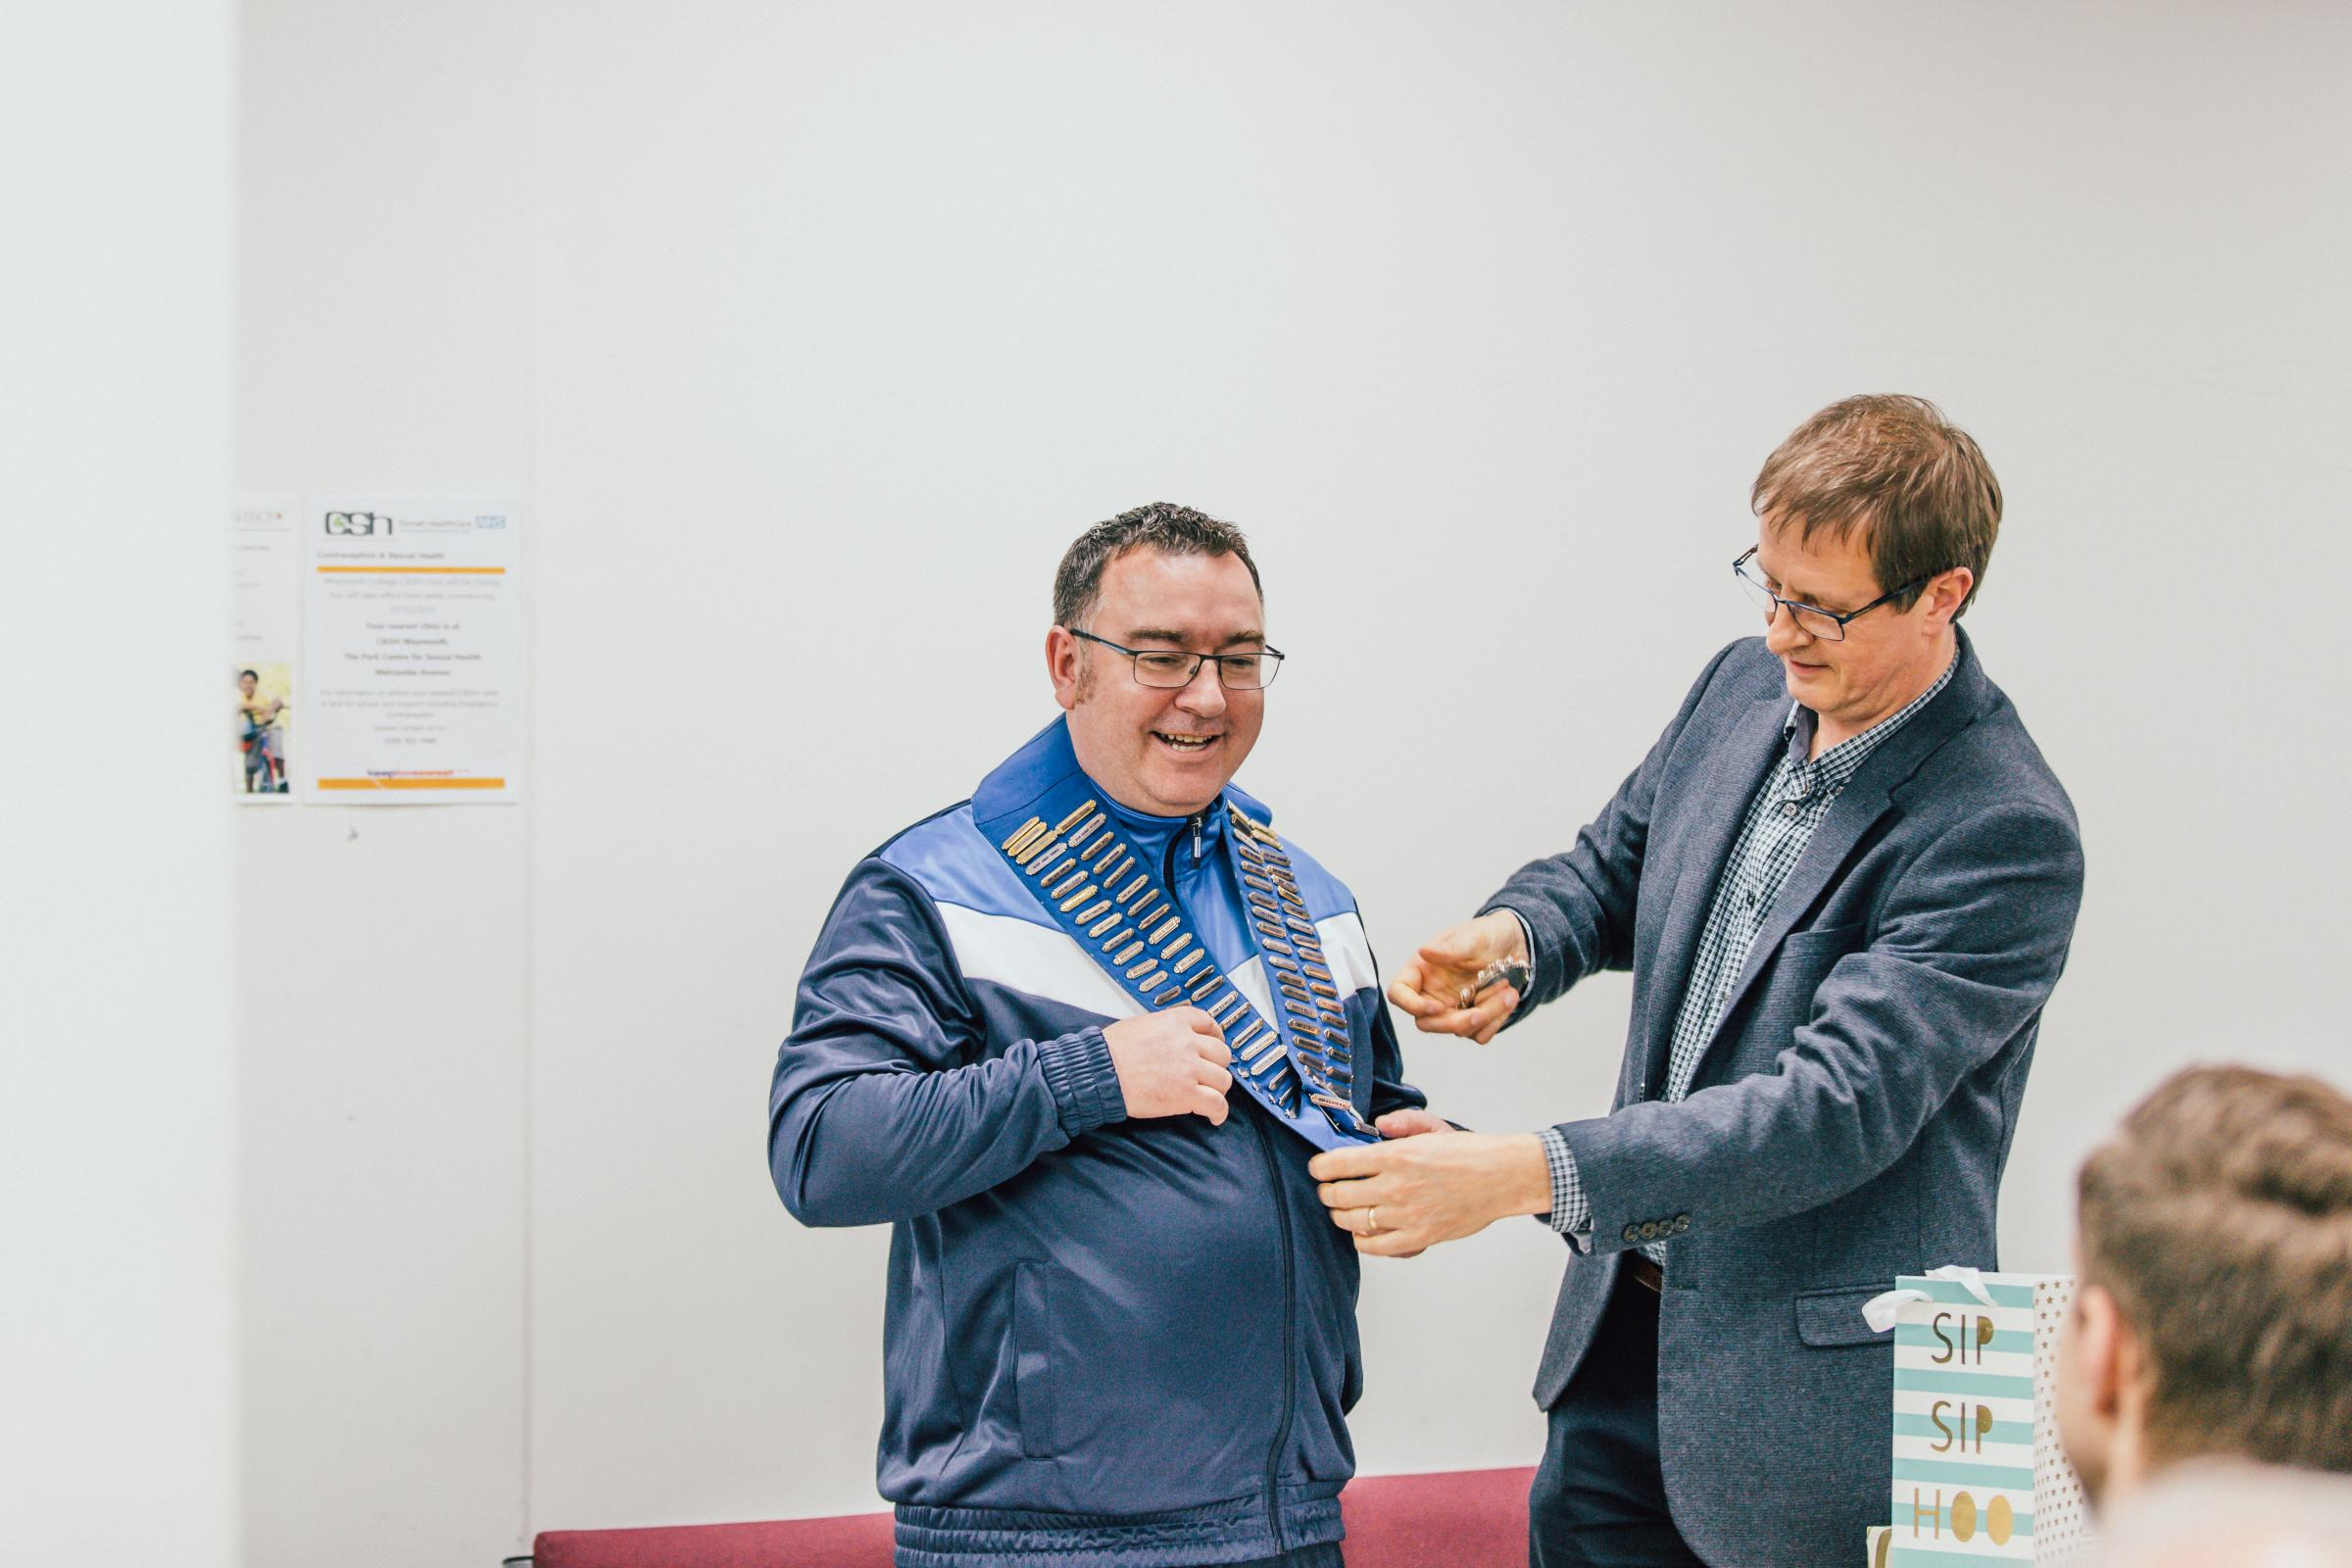 Pic from info@wpchamber.co.uk Craig Oakes, new president of Weymouth & Portland Chamber of Commerce, receives the chain of office from his predecessor, Andrew Knowles